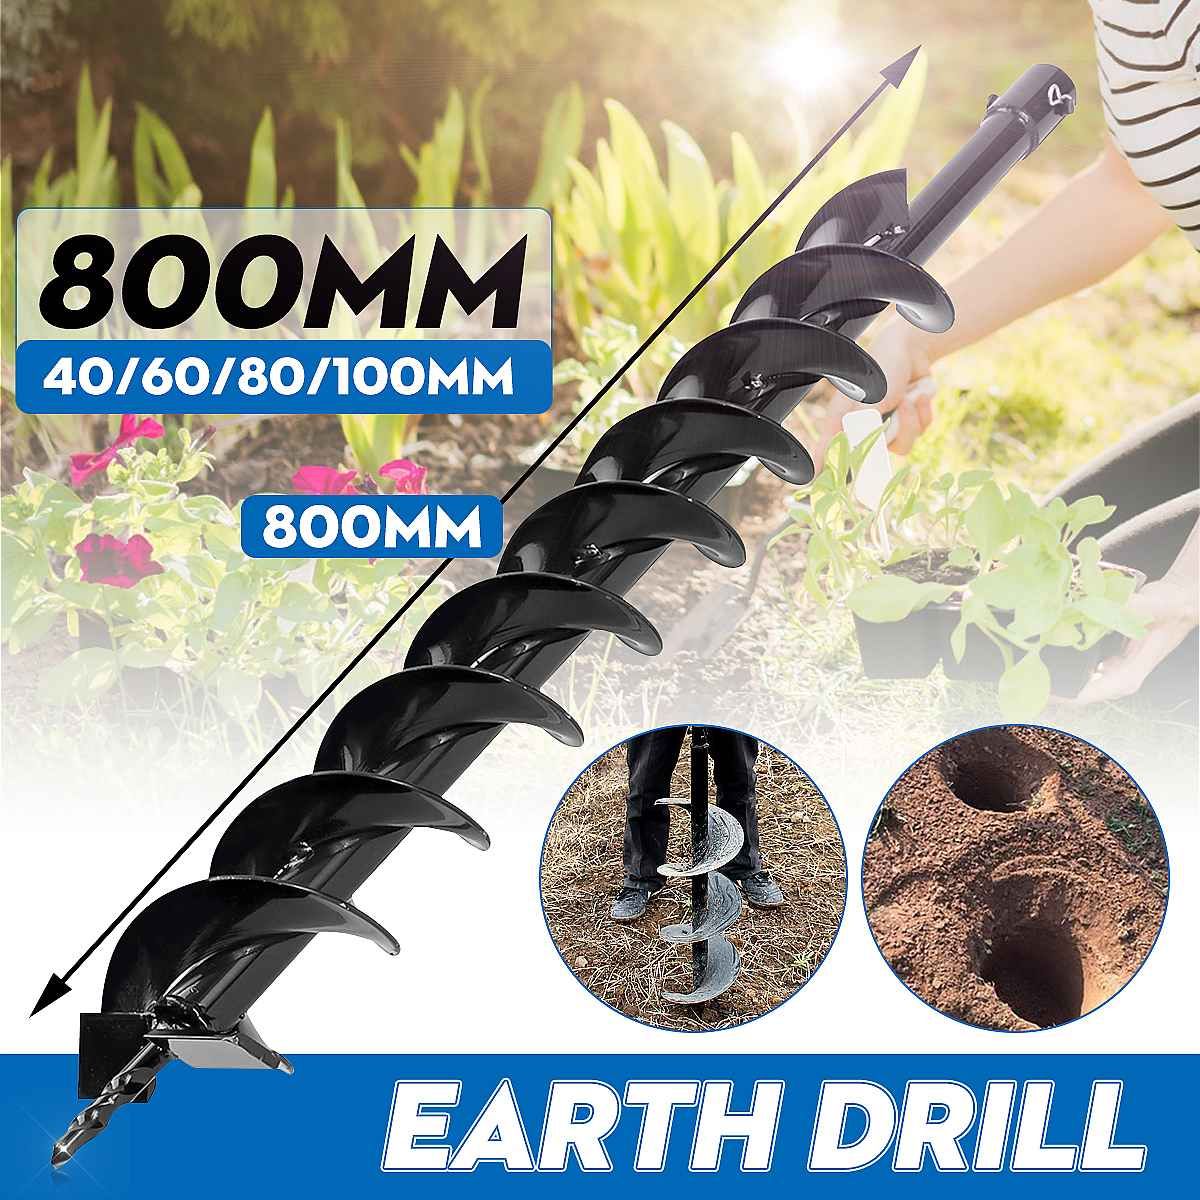 800mm Earth Drill Dual Blade Auger Drill Bit Fence Borer For Earth Petrol Post Hole Digger Power Tool Accessories 40/60/80/100mm